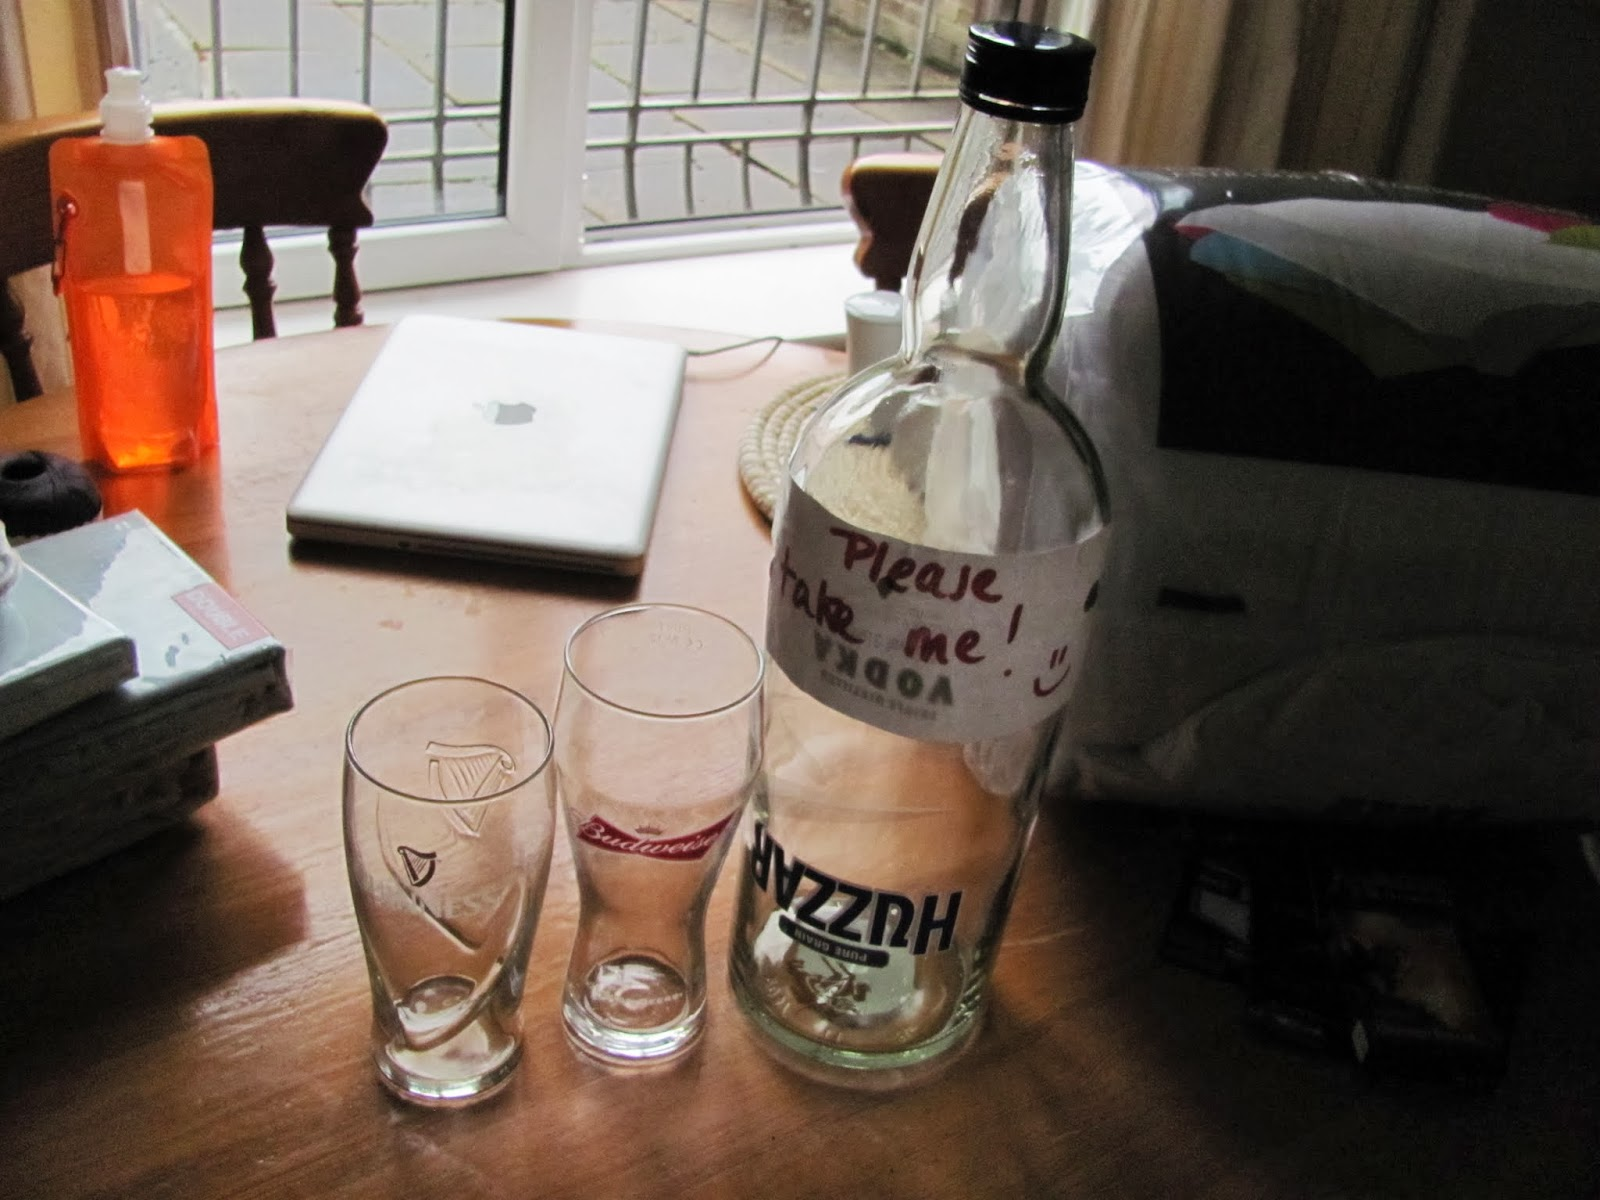 A large empty bottle of Huzzar vodka found in Dublin, Ireland